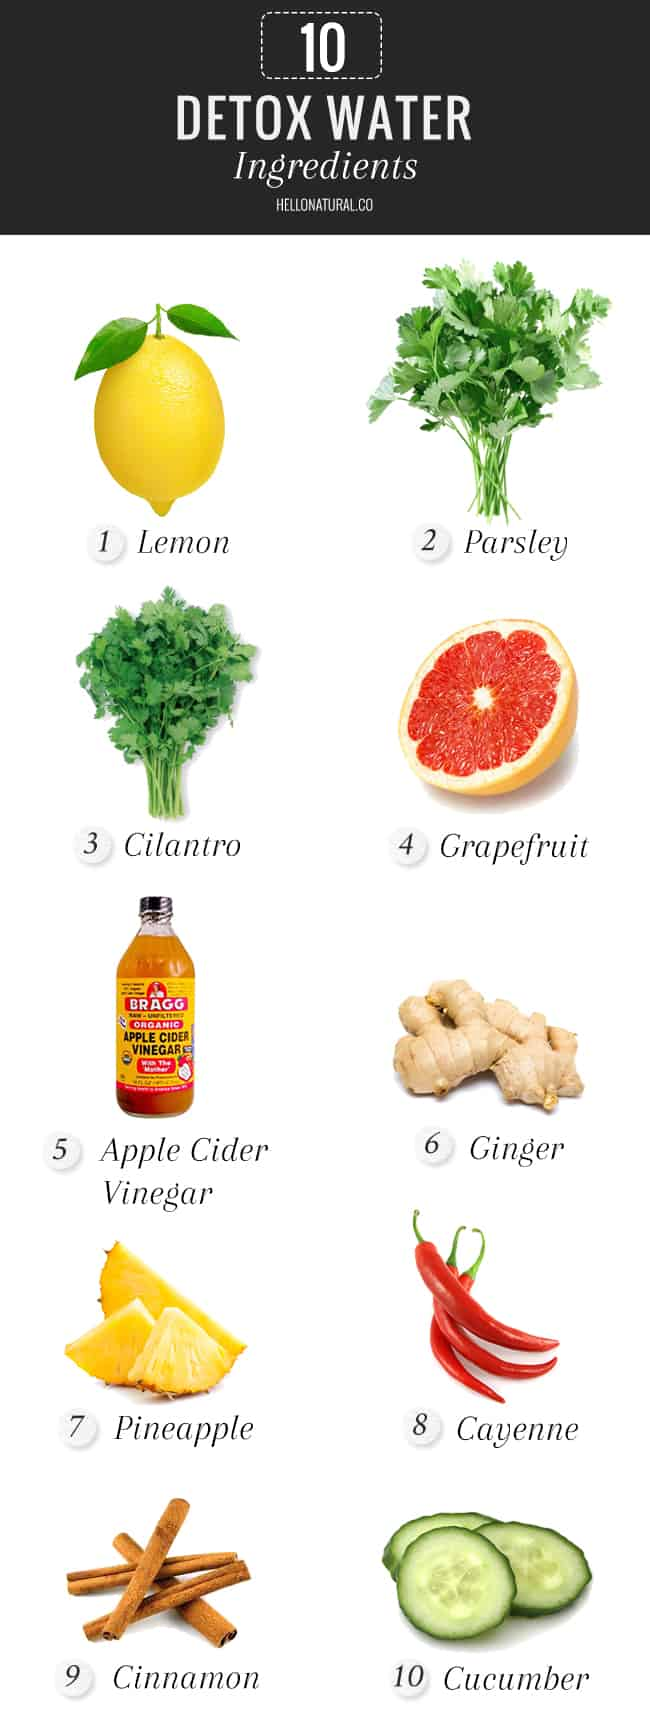 10 Detox Water Ingredients